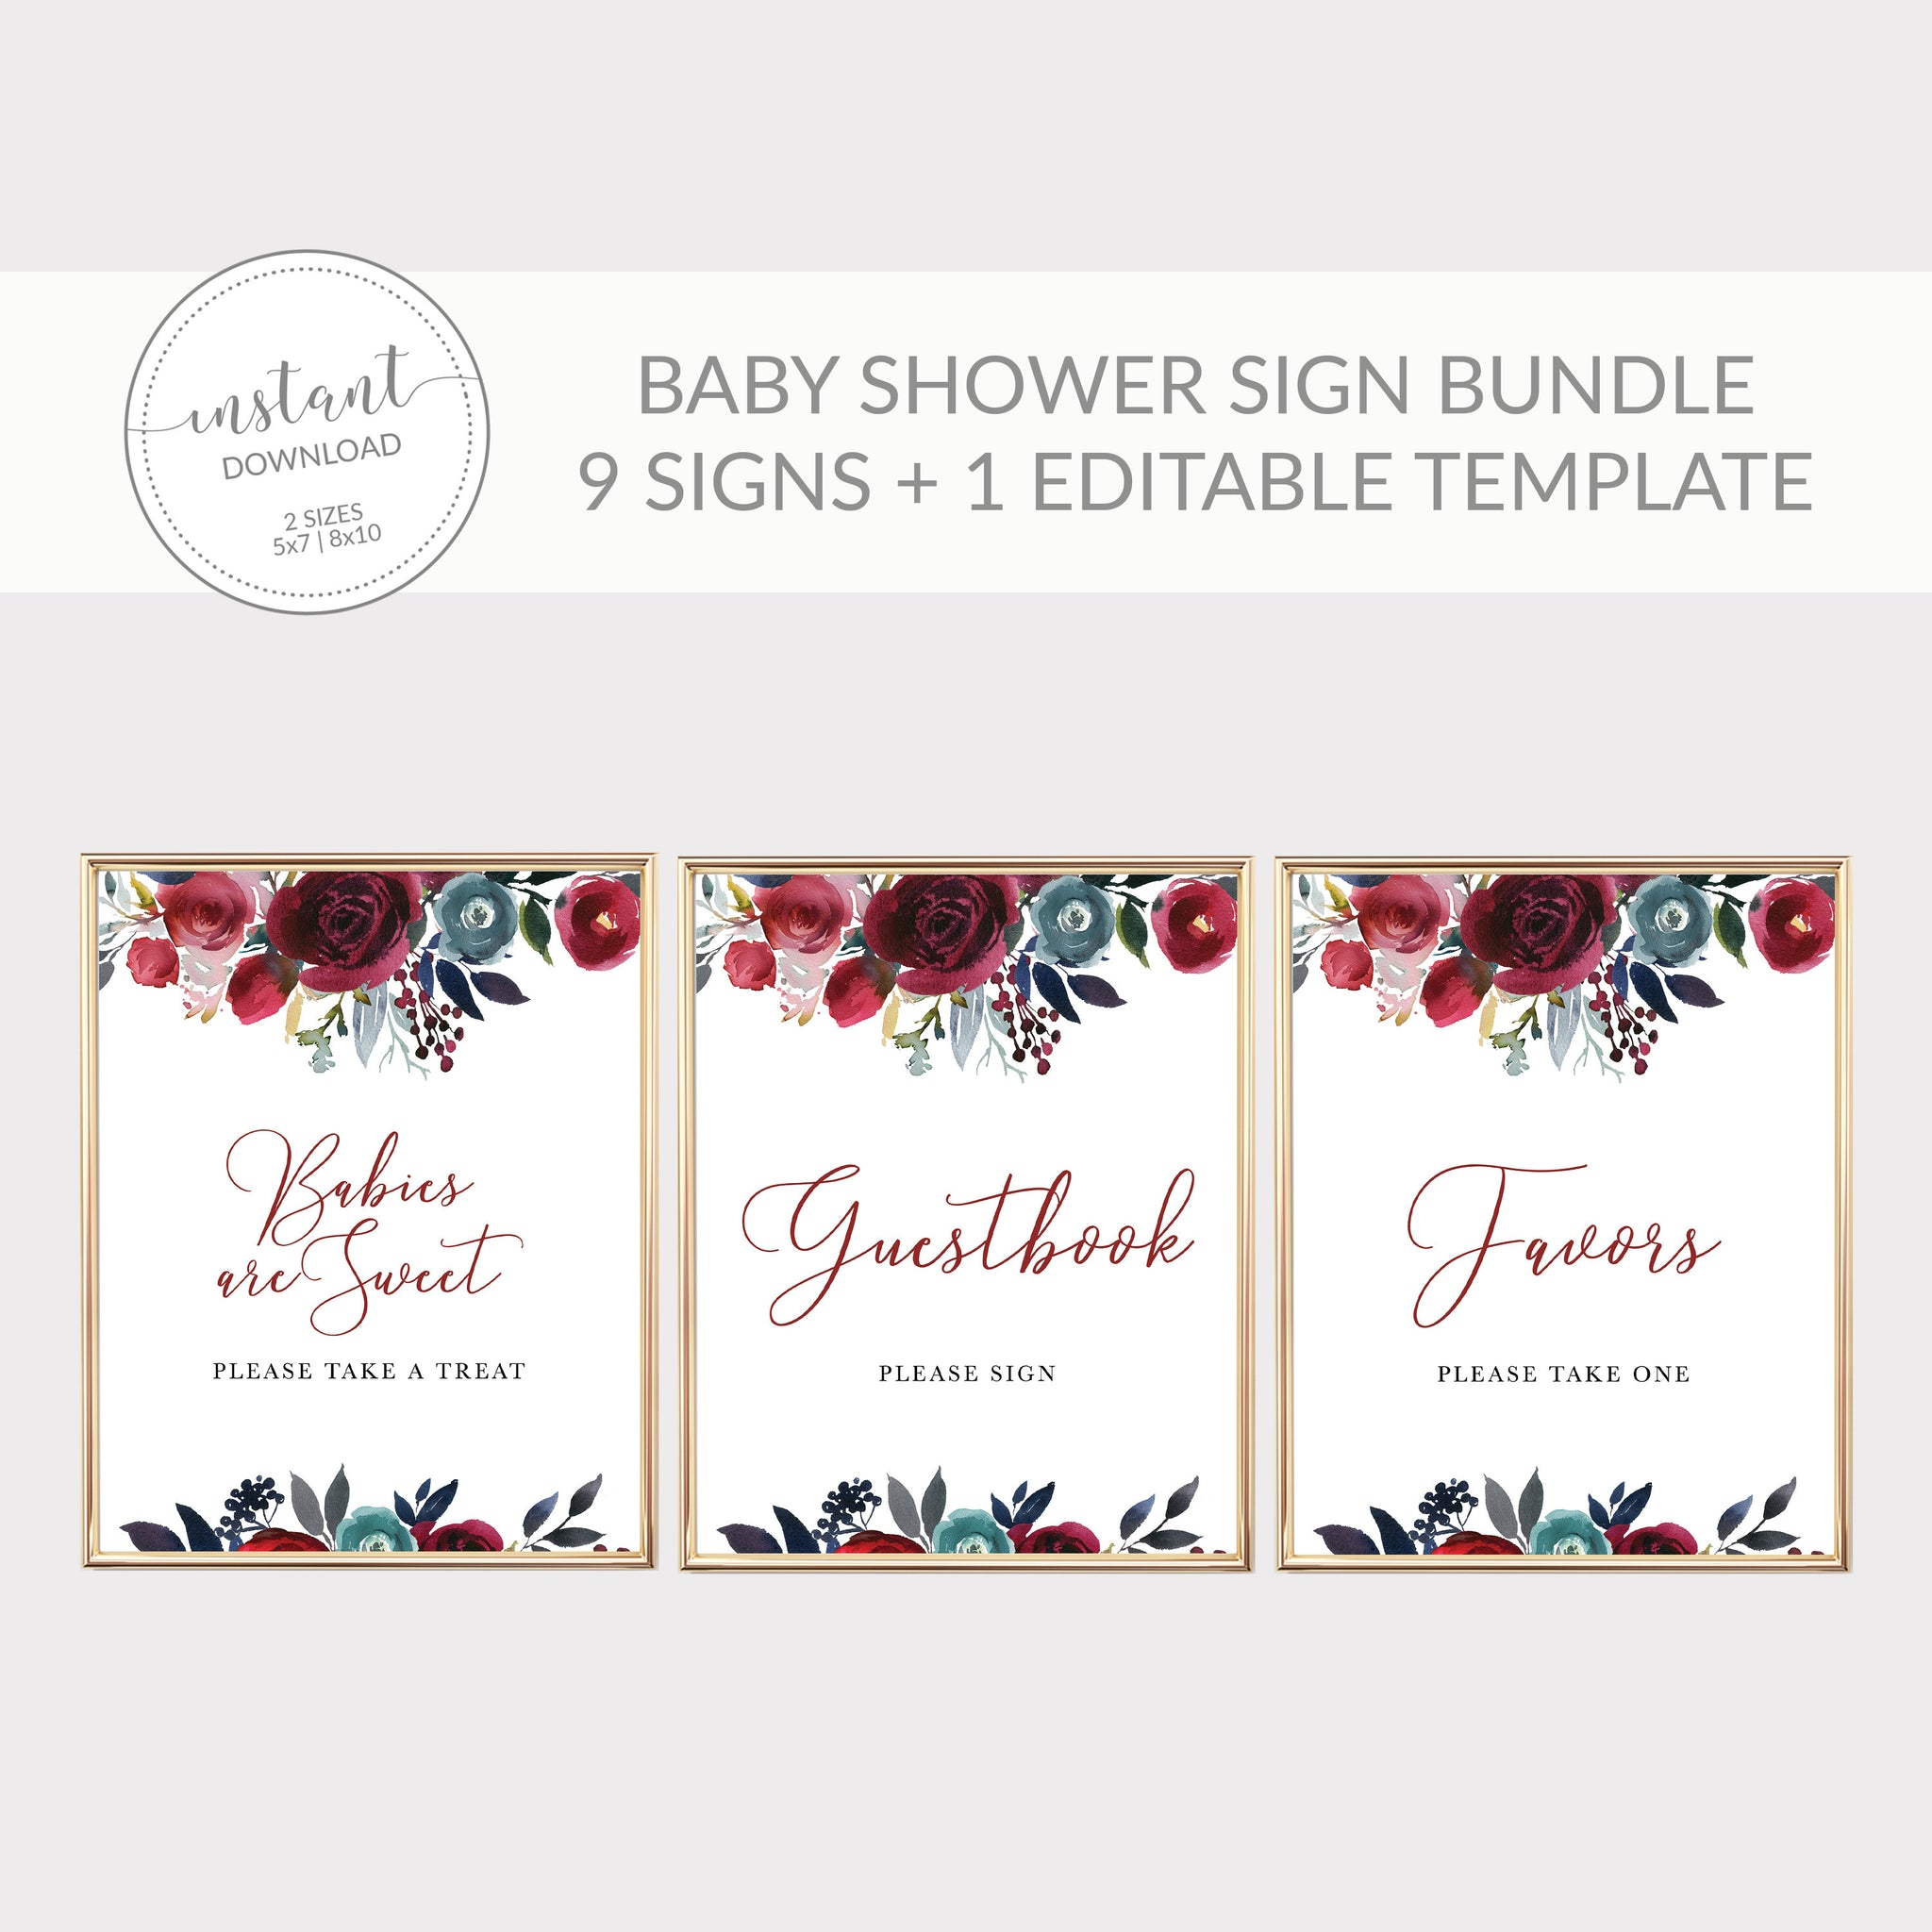 Burgundy and Navy Baby Shower Decorations, Burgundy Baby Shower Sign Bundle, Editable Baby Shower Template, DIGITAL DOWNLOAD - BB100 - @PlumPolkaDot